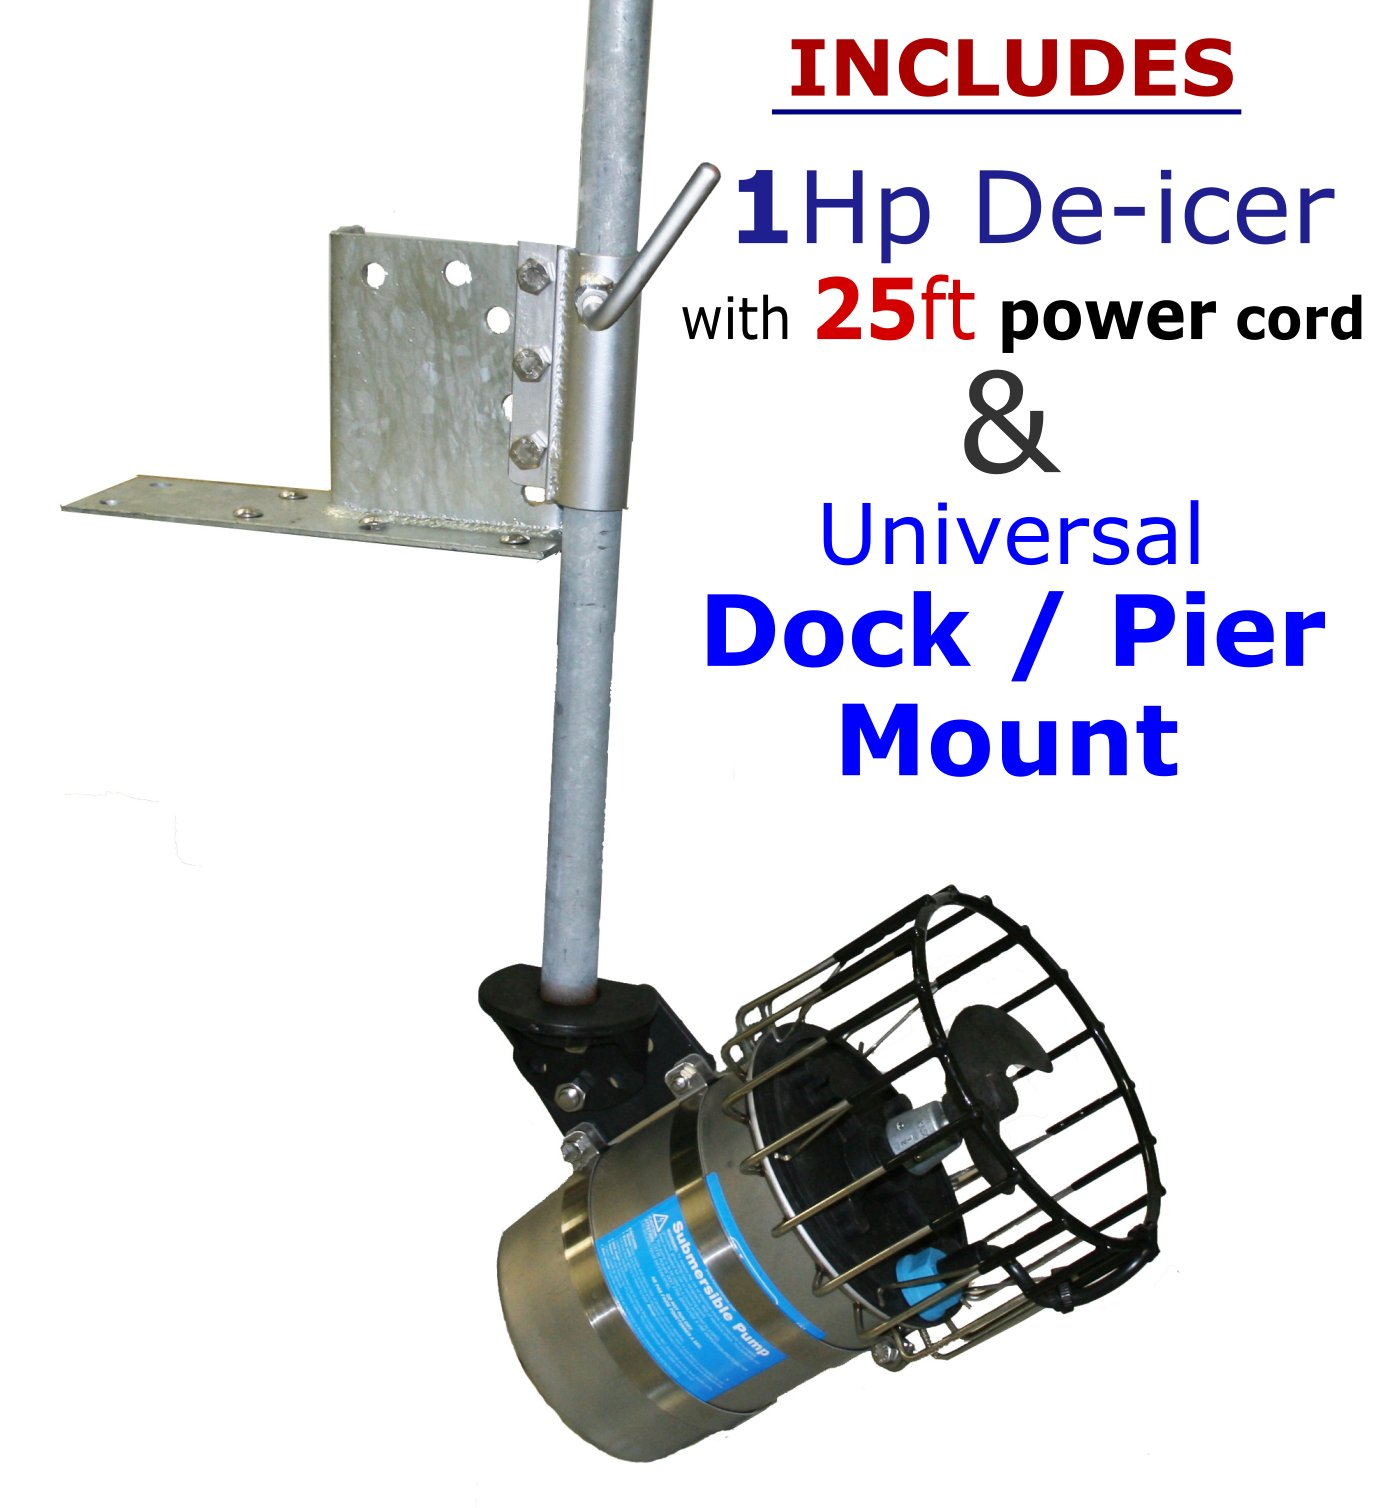 Kasco 1 Hp De-icer w/ 25ft Cord + Universal Dock / Pier Mount - Deicer for Water, Lake, Pond, Marina, Dock, Pier - Model# 4400d25 by Kasco